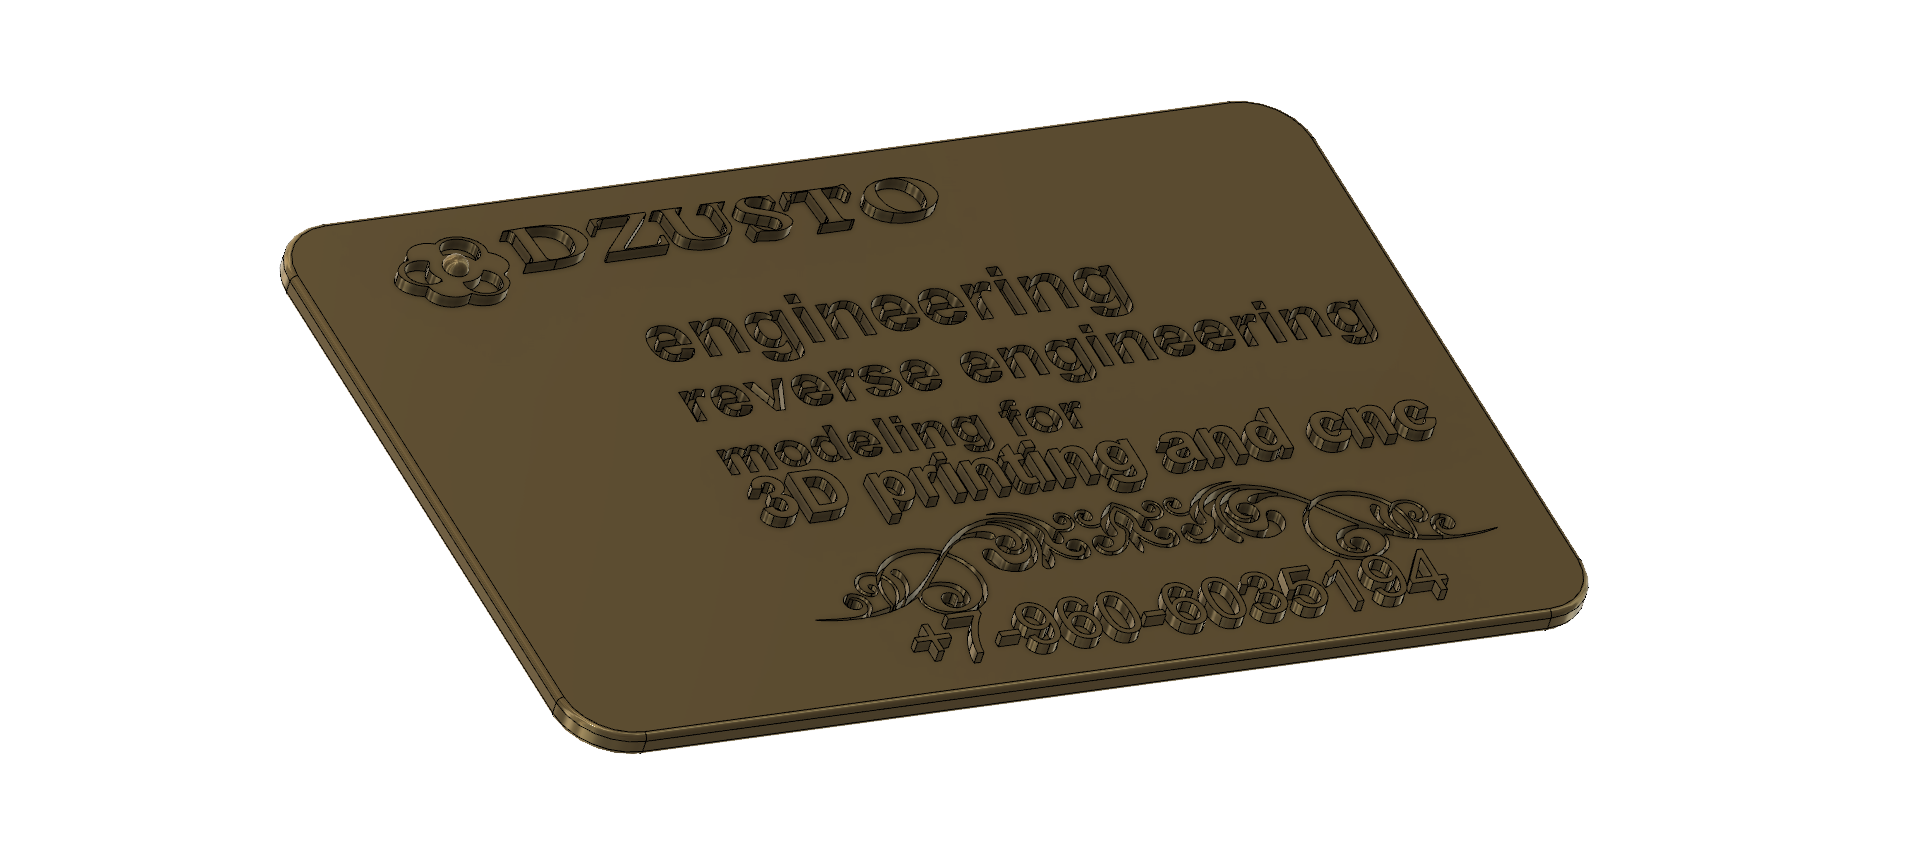 business card 01 v5-08.png Download free STL file Modeling product engineering reverse-engineering 3d print cnc • 3D printing design, Dzusto